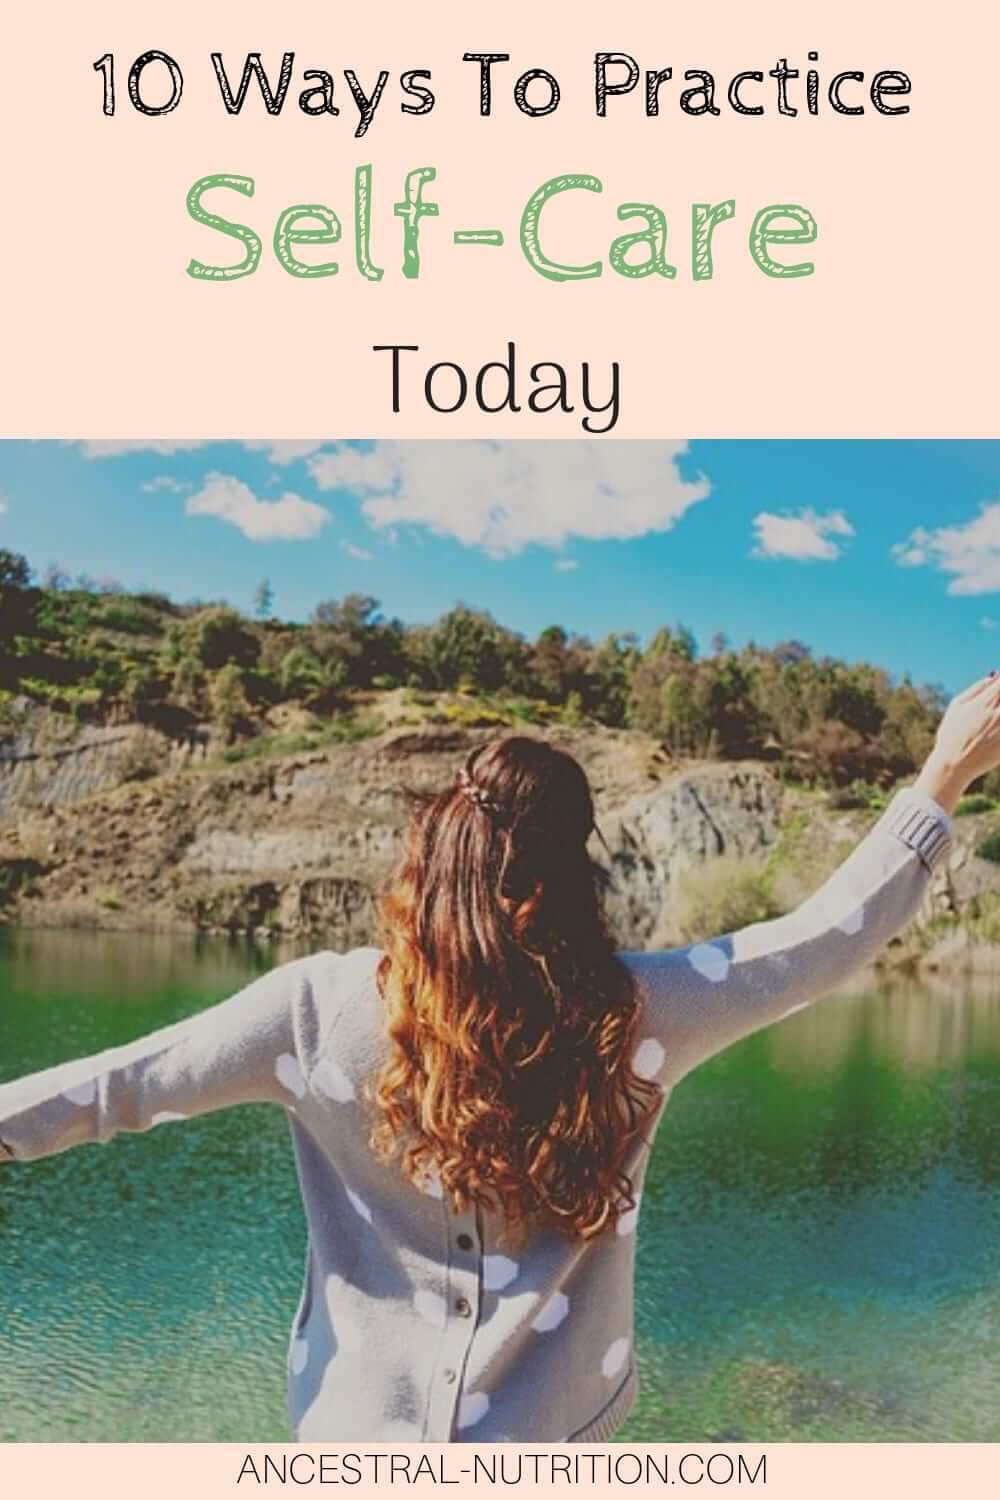 10 Simple Self-Care Activities you can do today #selfcare, #mentalhealth, #anxiety, #mindfulness, #positivity